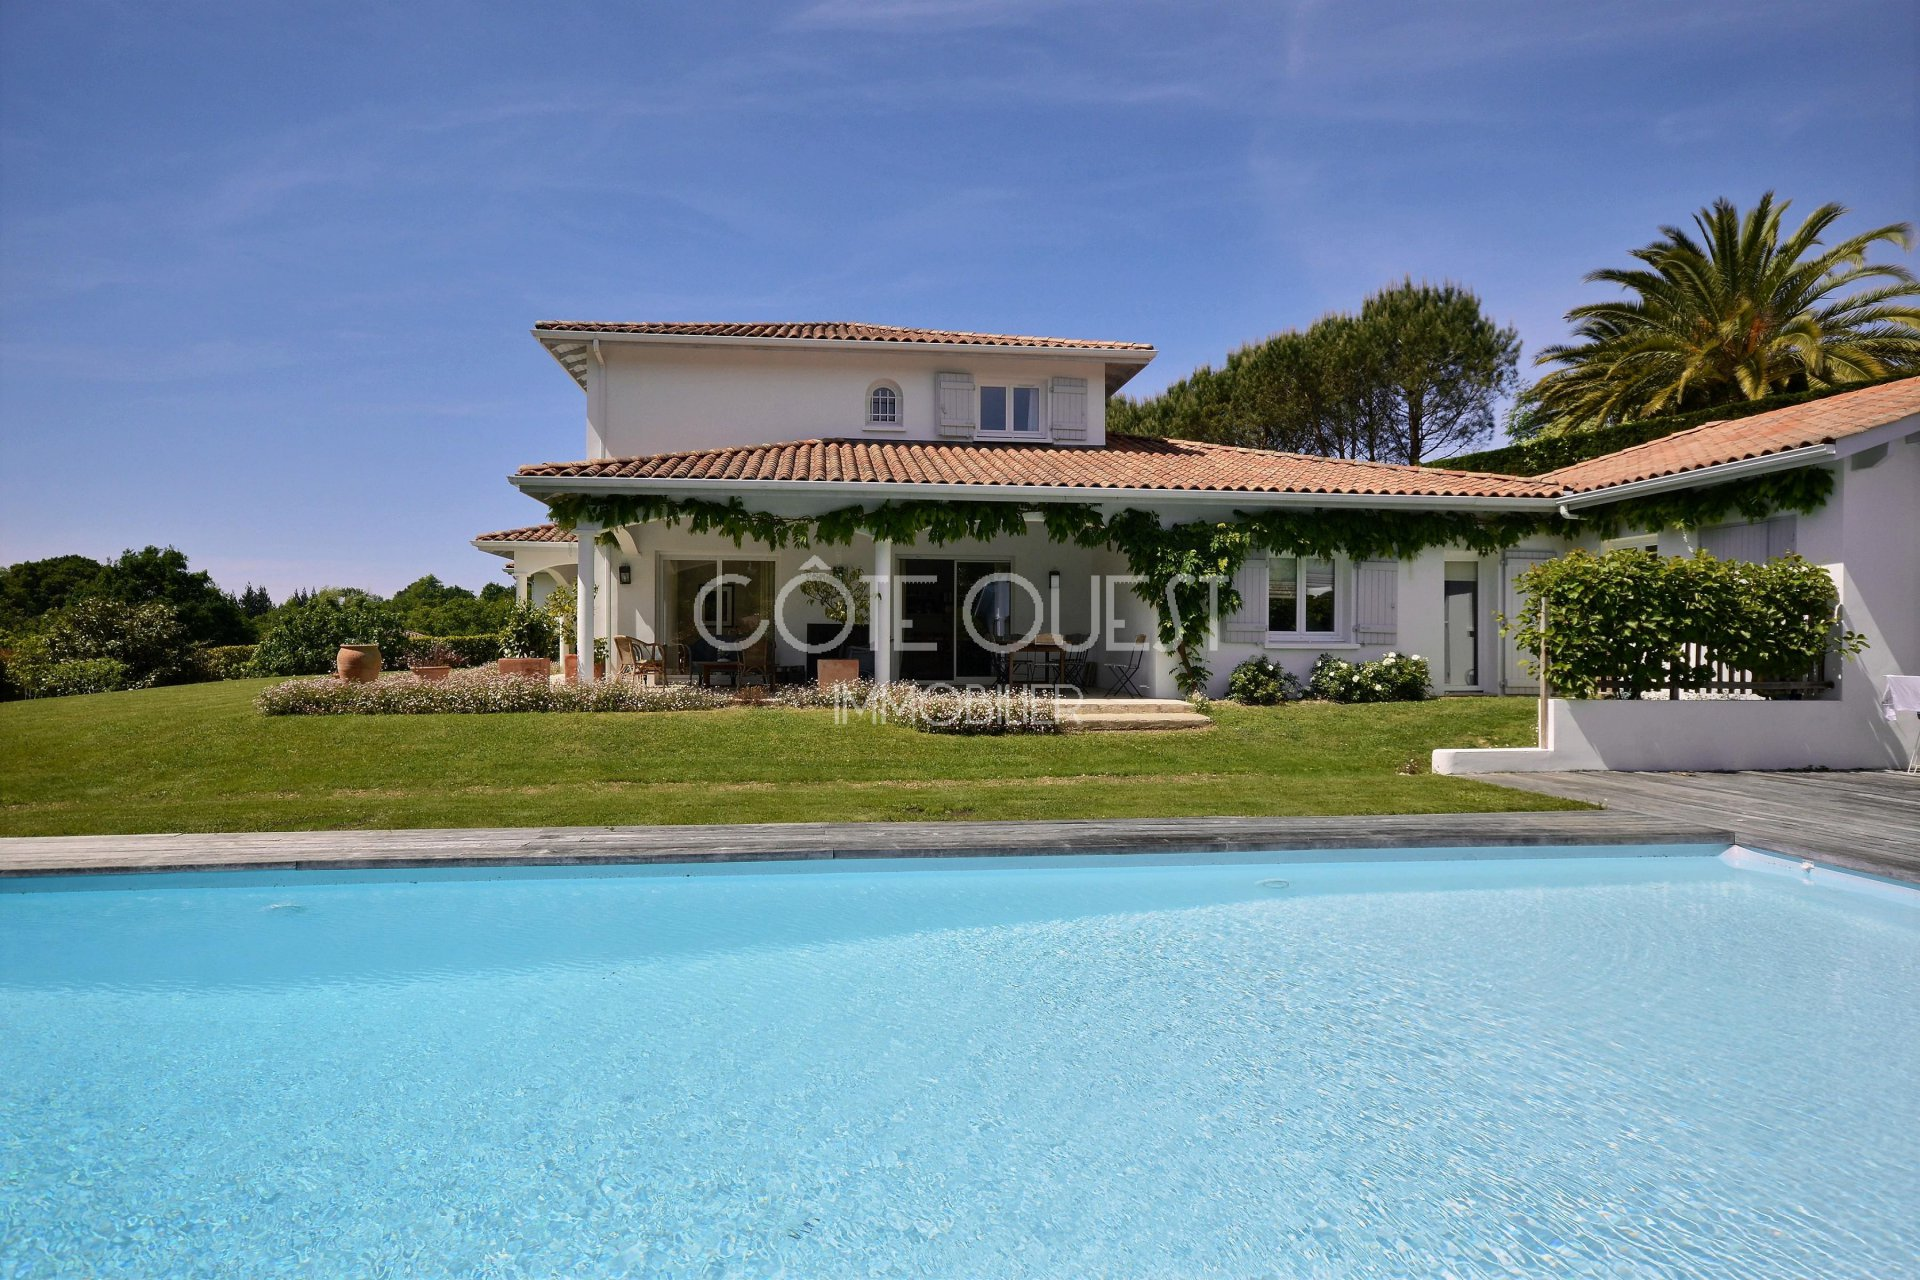 SAINT JEAN DE LUZ. AN 11-ROOM VILLA WITH A SWIMMING POOL